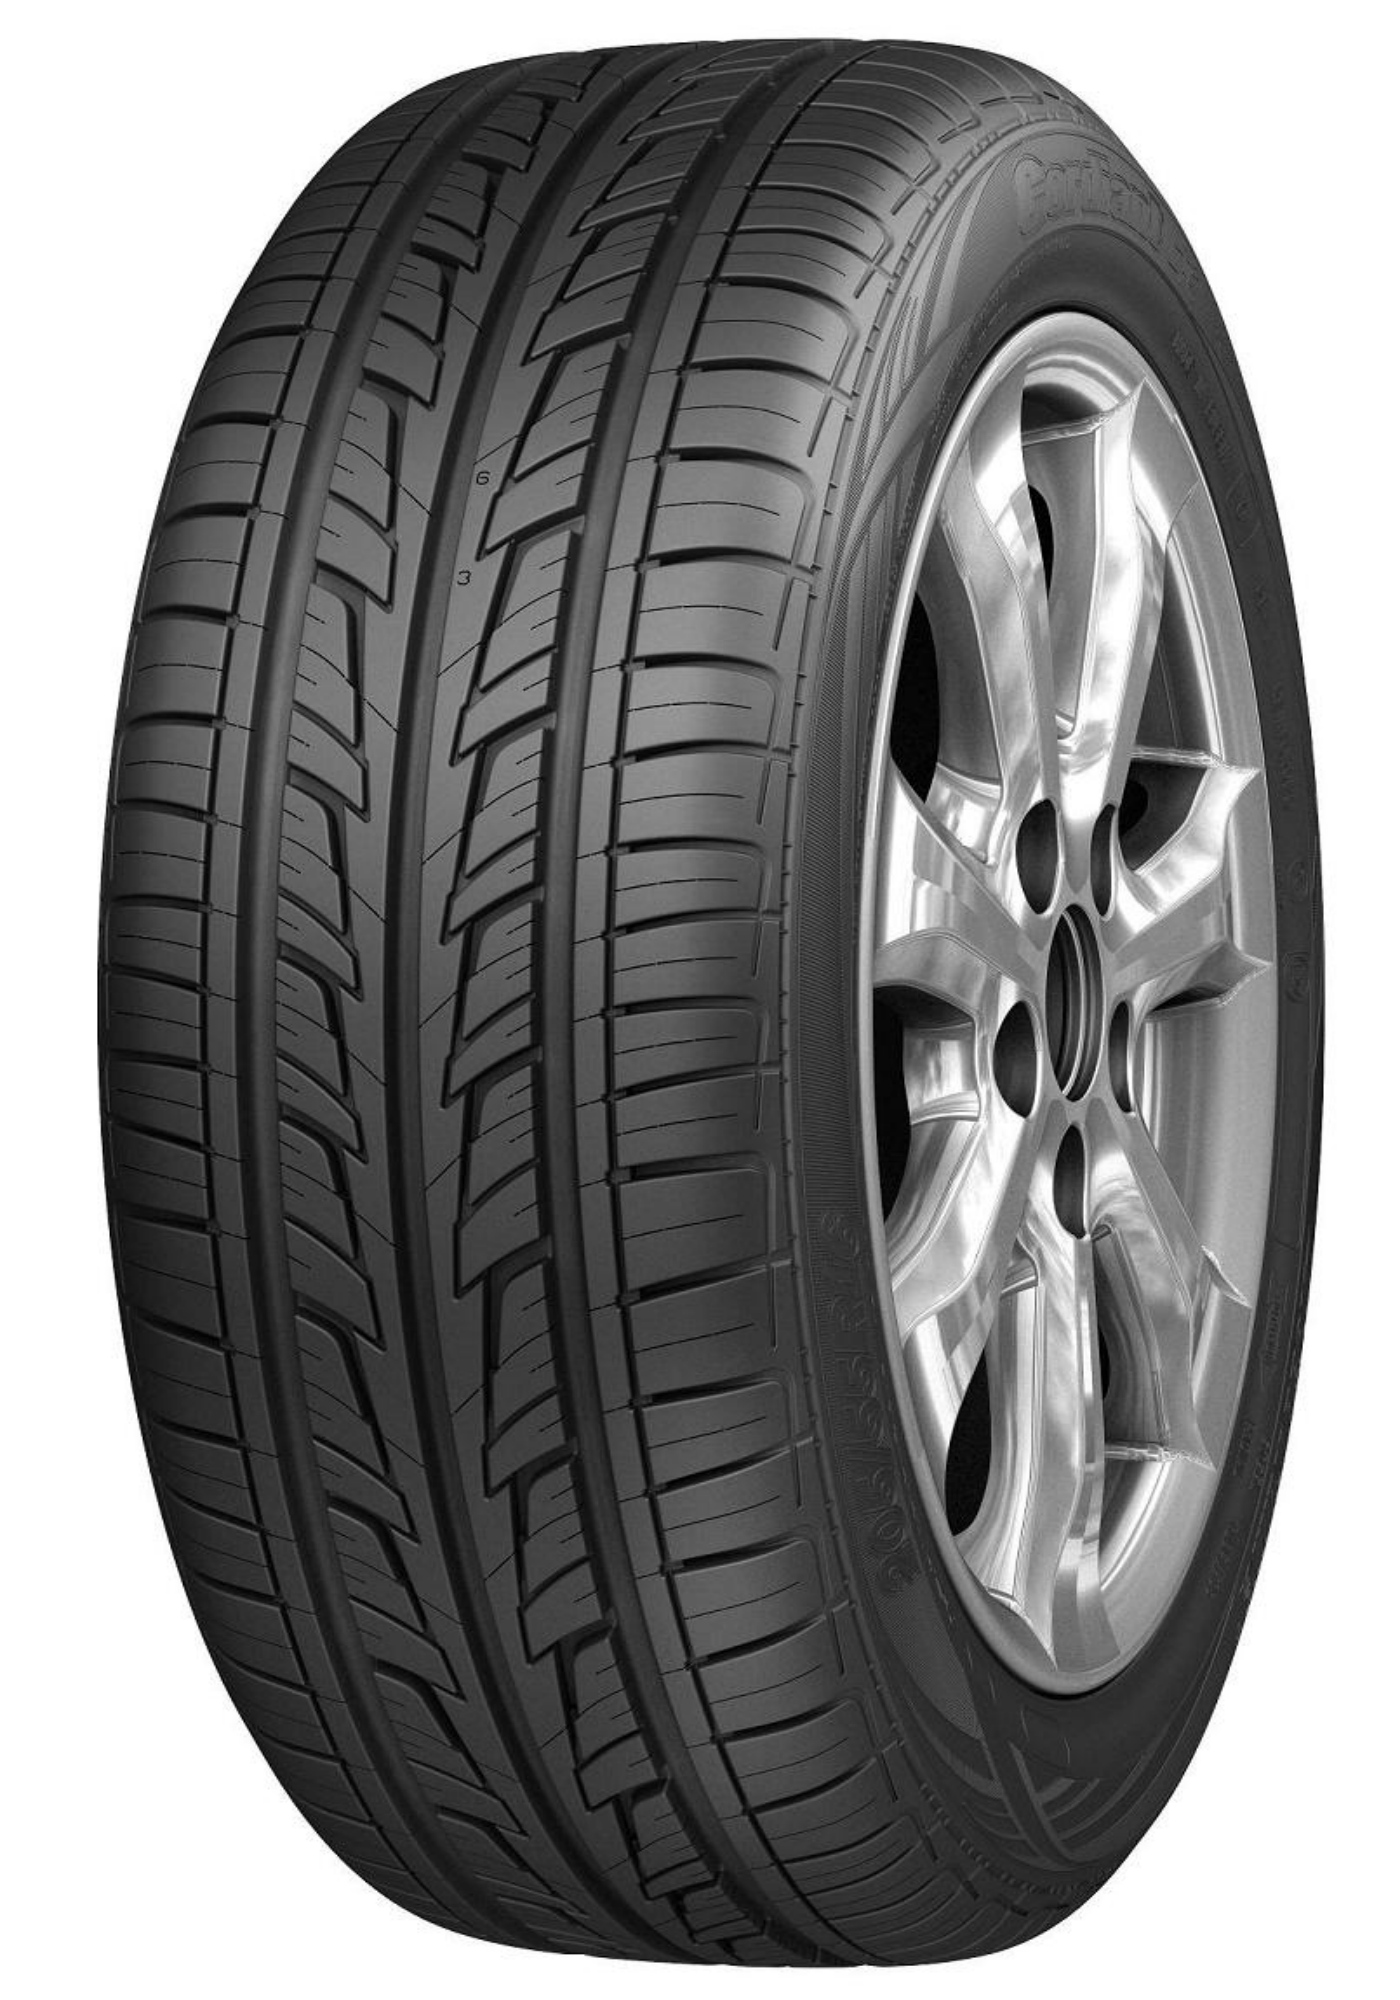 Cordiant Road Runner 155/70 R13